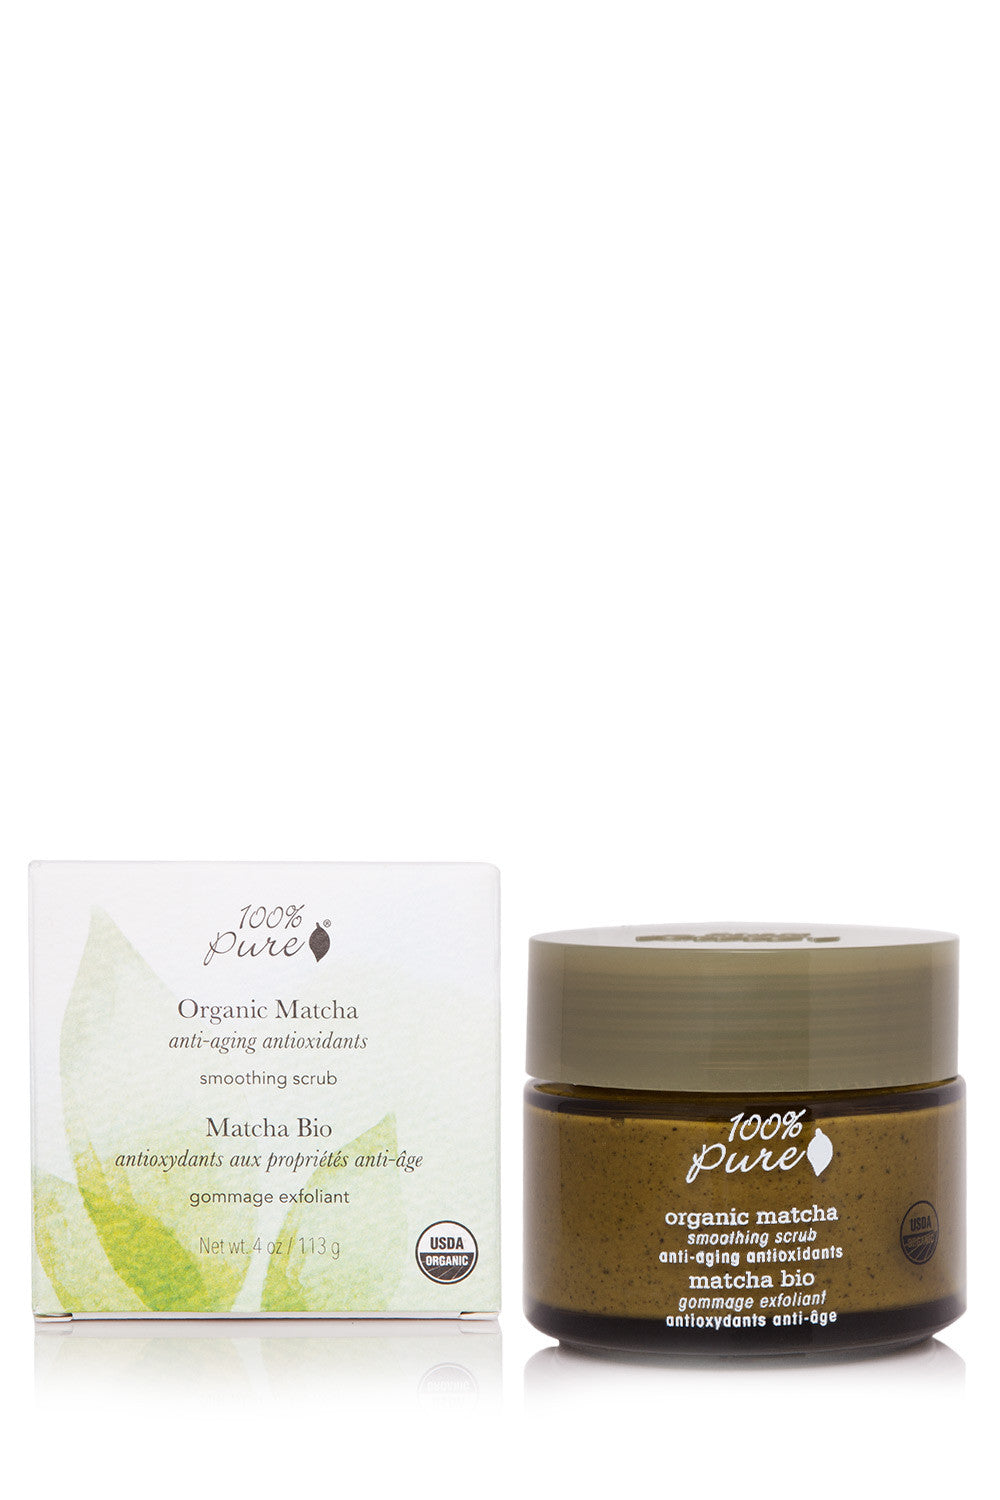 100% Pure Organic Matcha Anti-Aging Antioxidants Smoothing Scrub